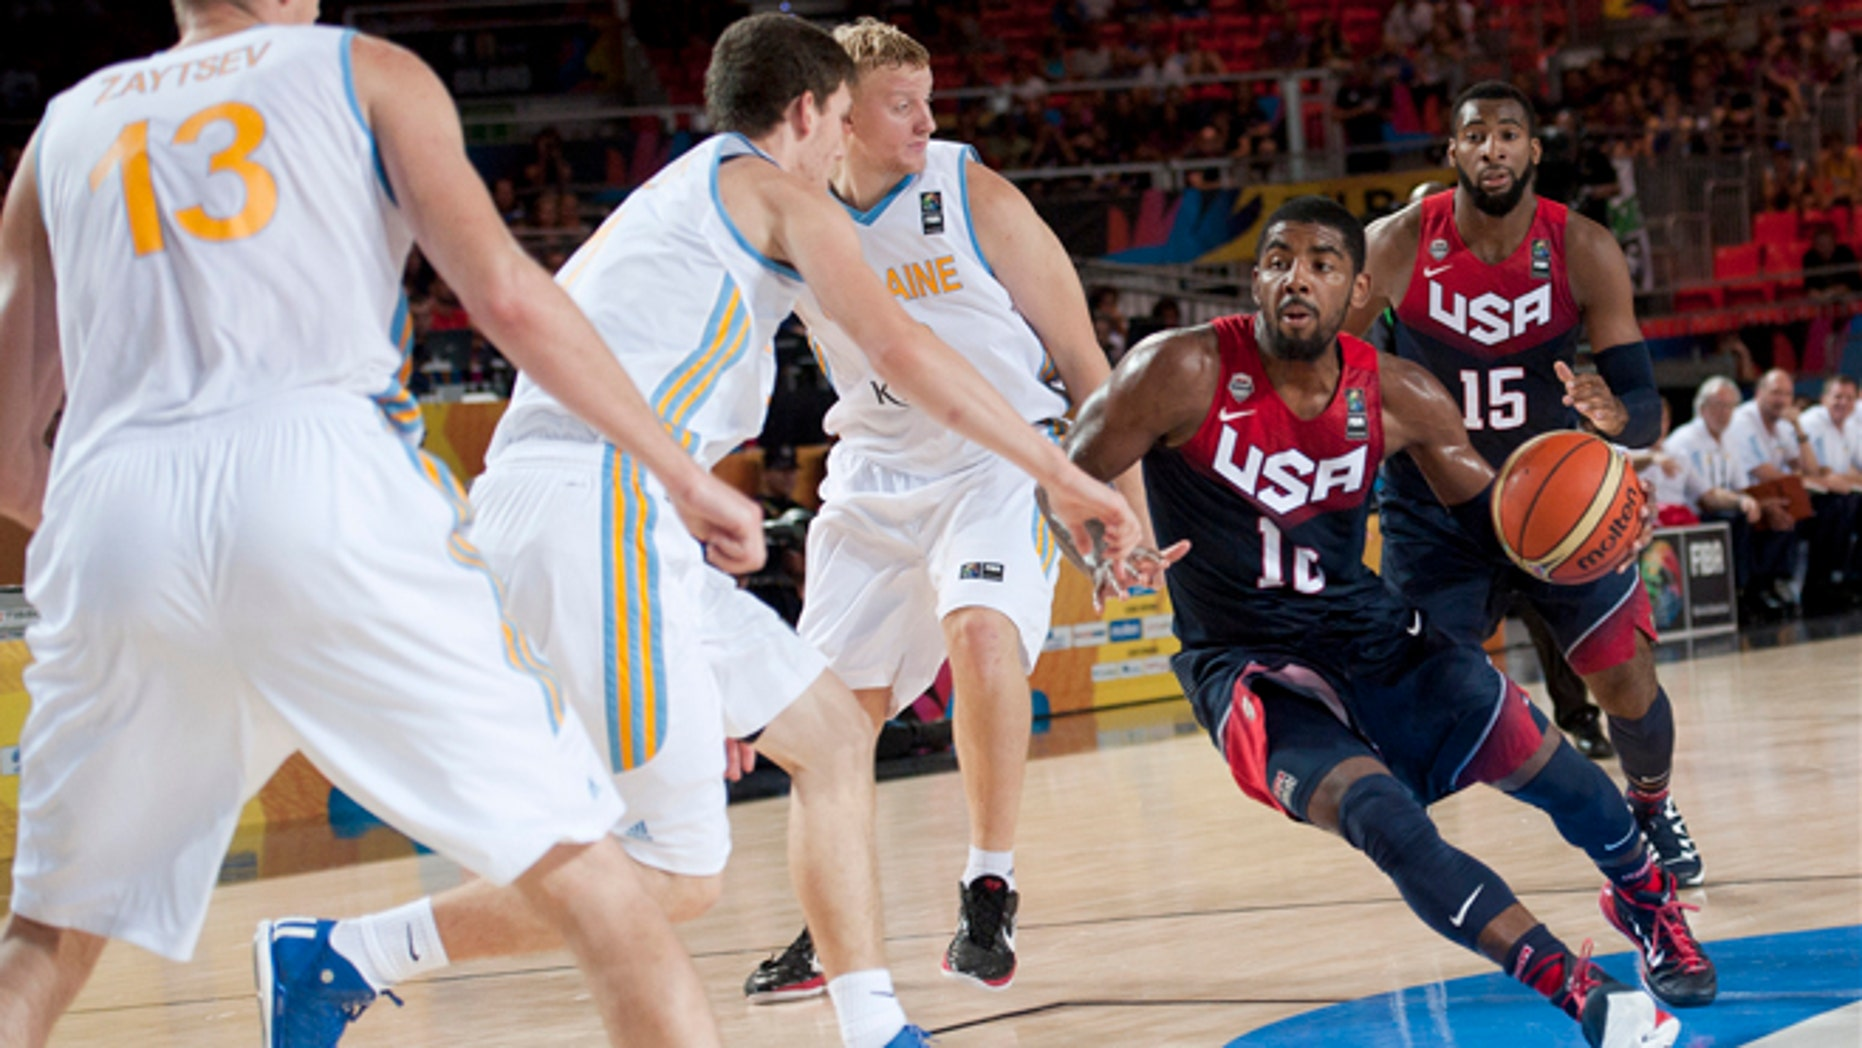 Kyrie Irving of the US goes for the basket between Ukraine players during the Group C Basketball World Cup match, in Bilbao northern Spain, Thursday, Sept. 4, 2014. The 2014 Basketball World Cup competition take place in various cities in Spain from Aug. 30 through to Sept. 14.  United States won 95-71. (AP Photo/Alvaro Barrientos)